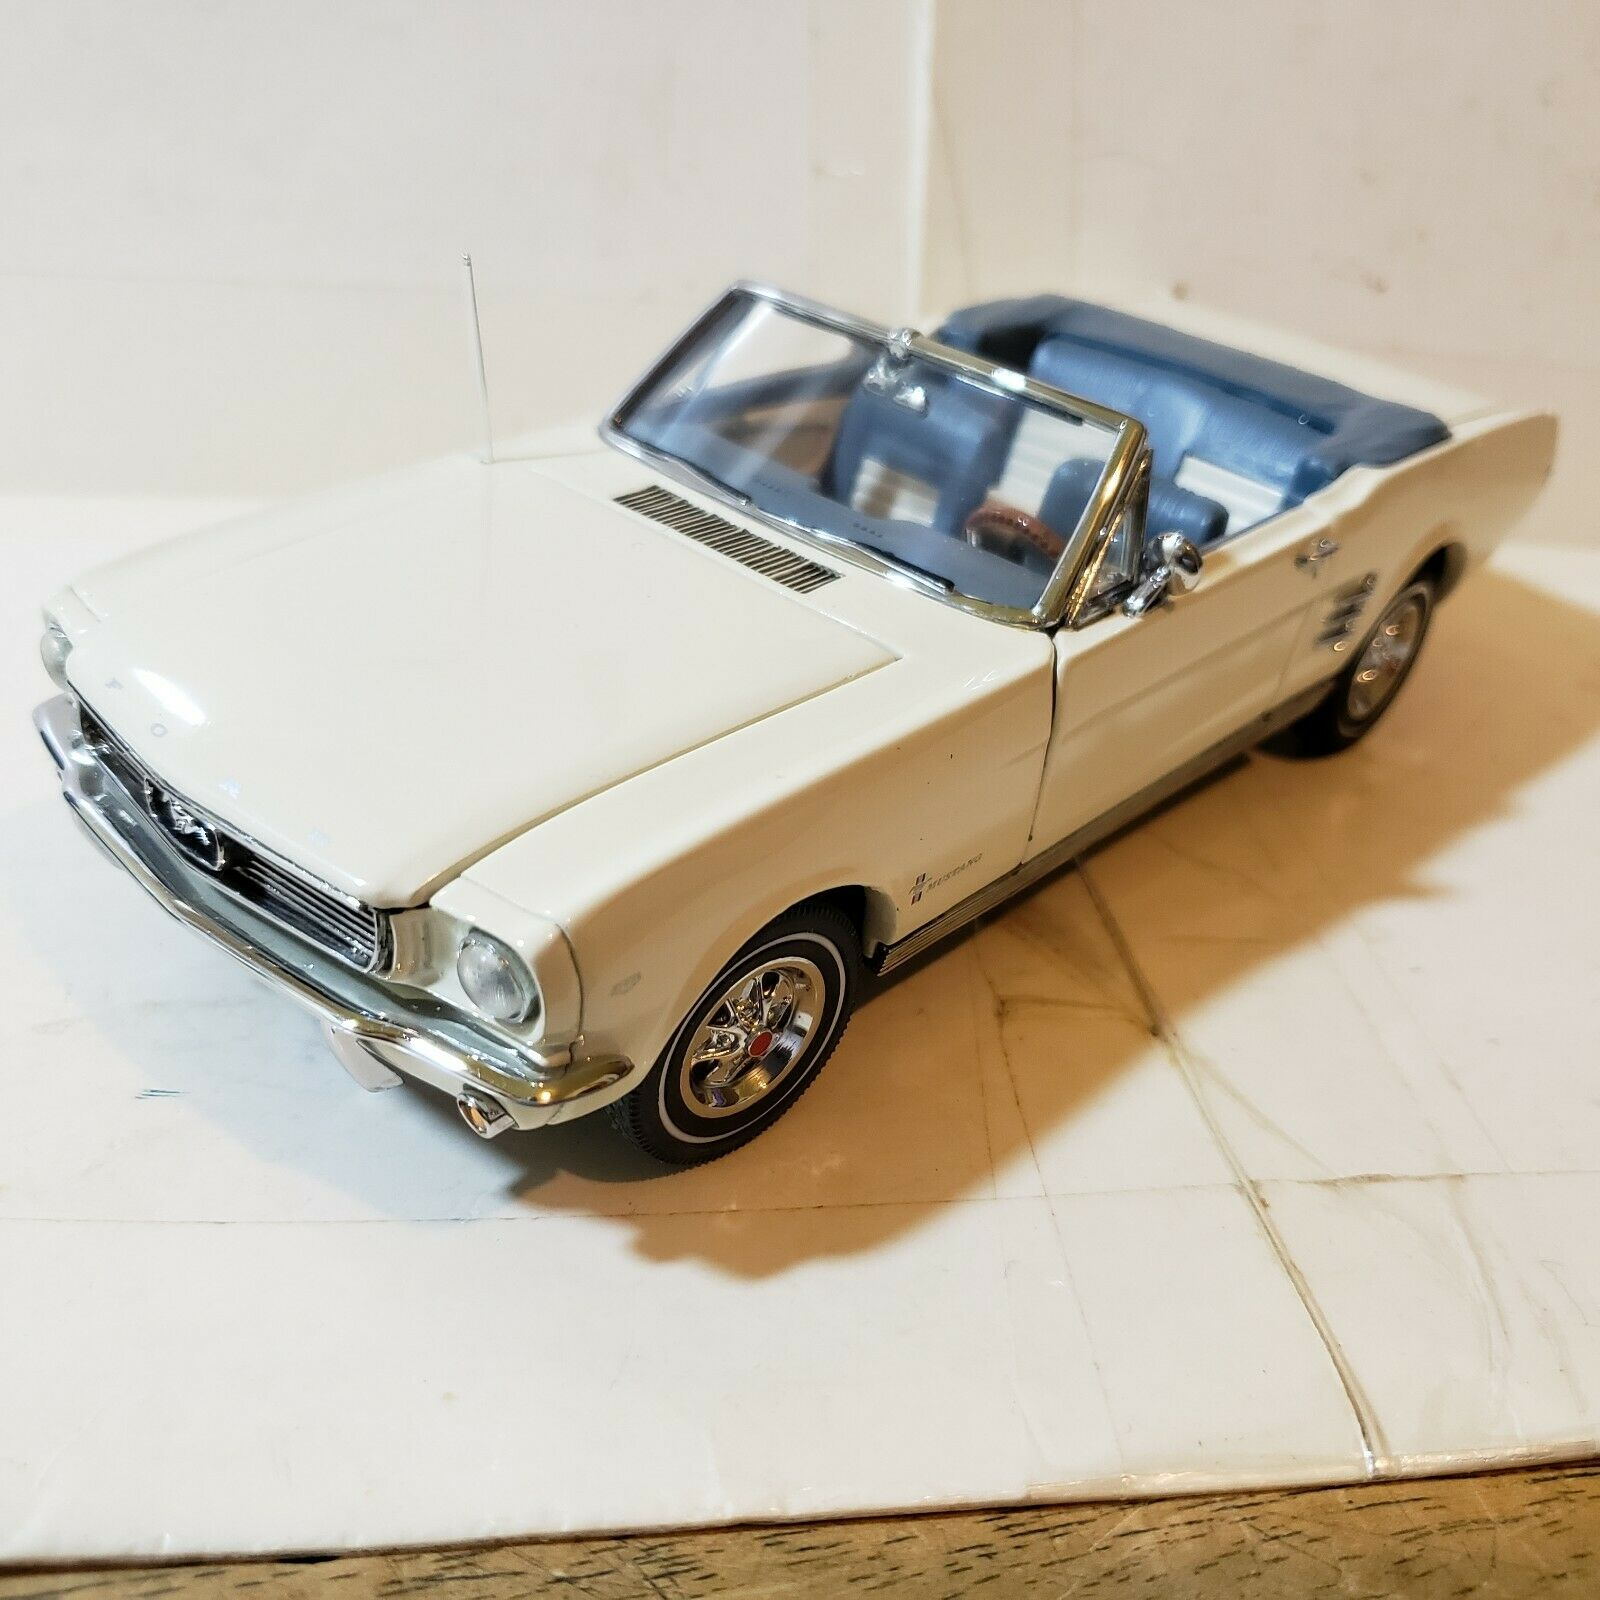 Danbury Comme neuf Ford Mustang 1966 cabriolet 1 24 Die Cast 6